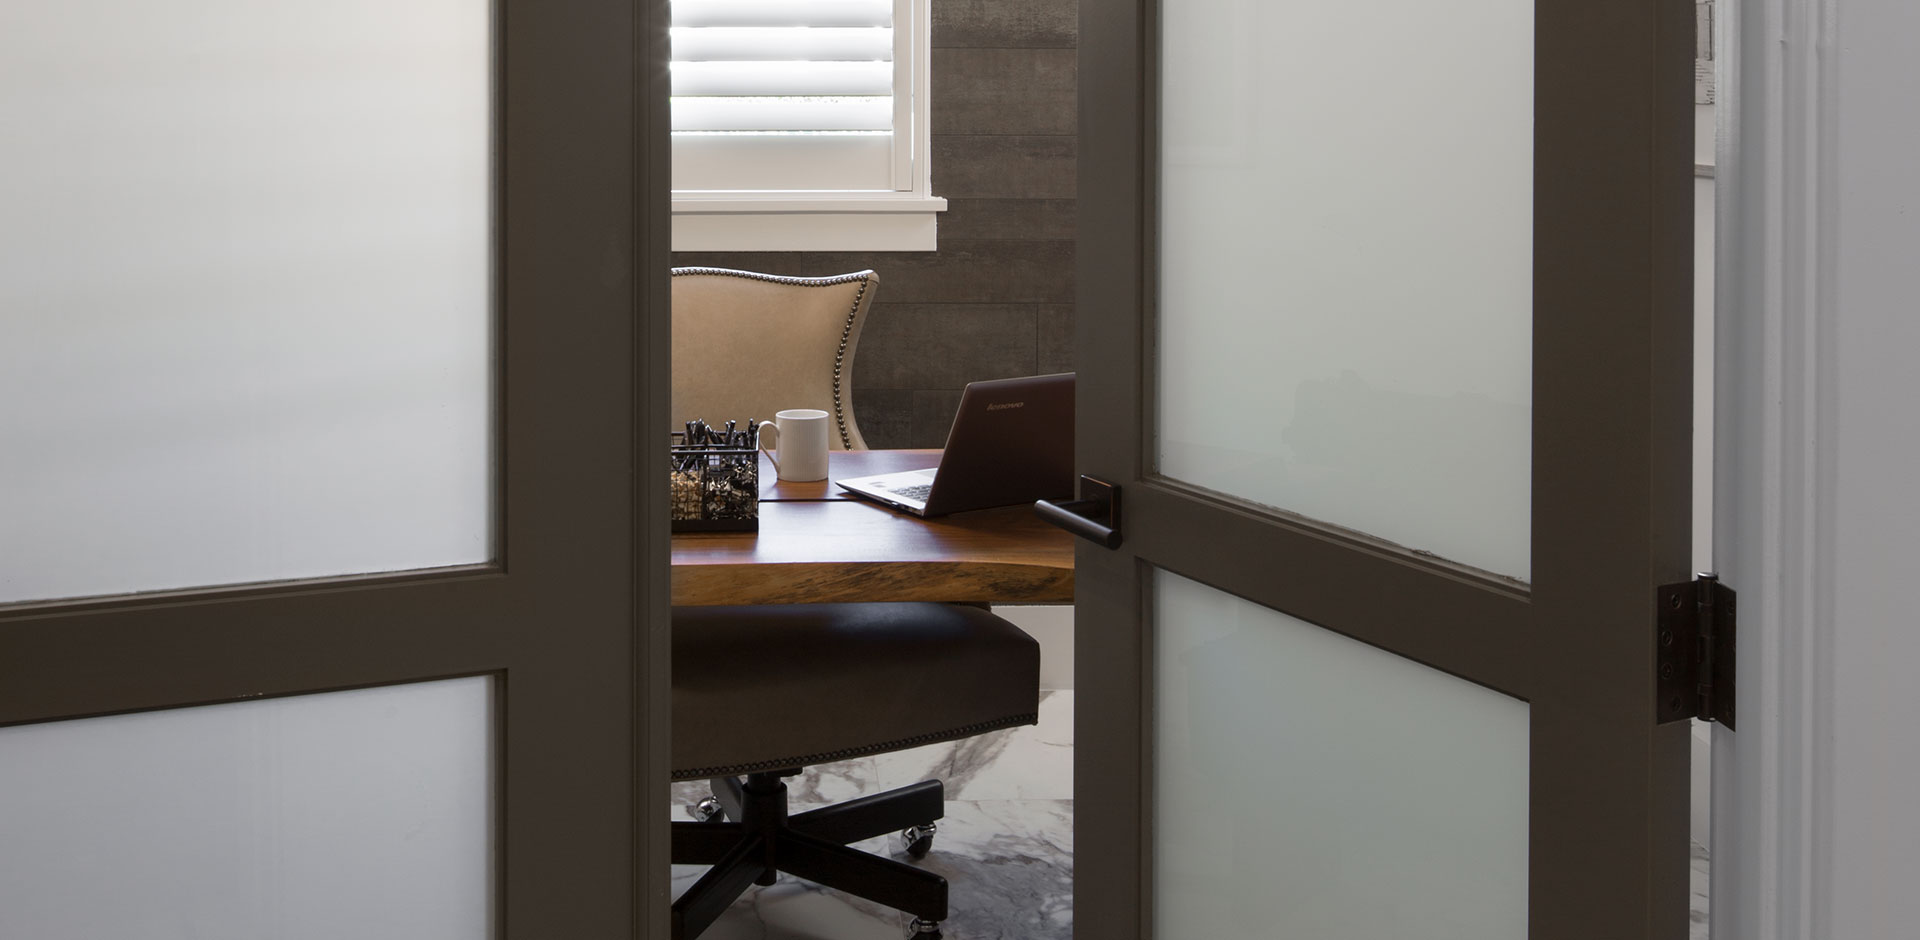 Looking into an office through a pair of TS3000 doors in MDF with white lami glass